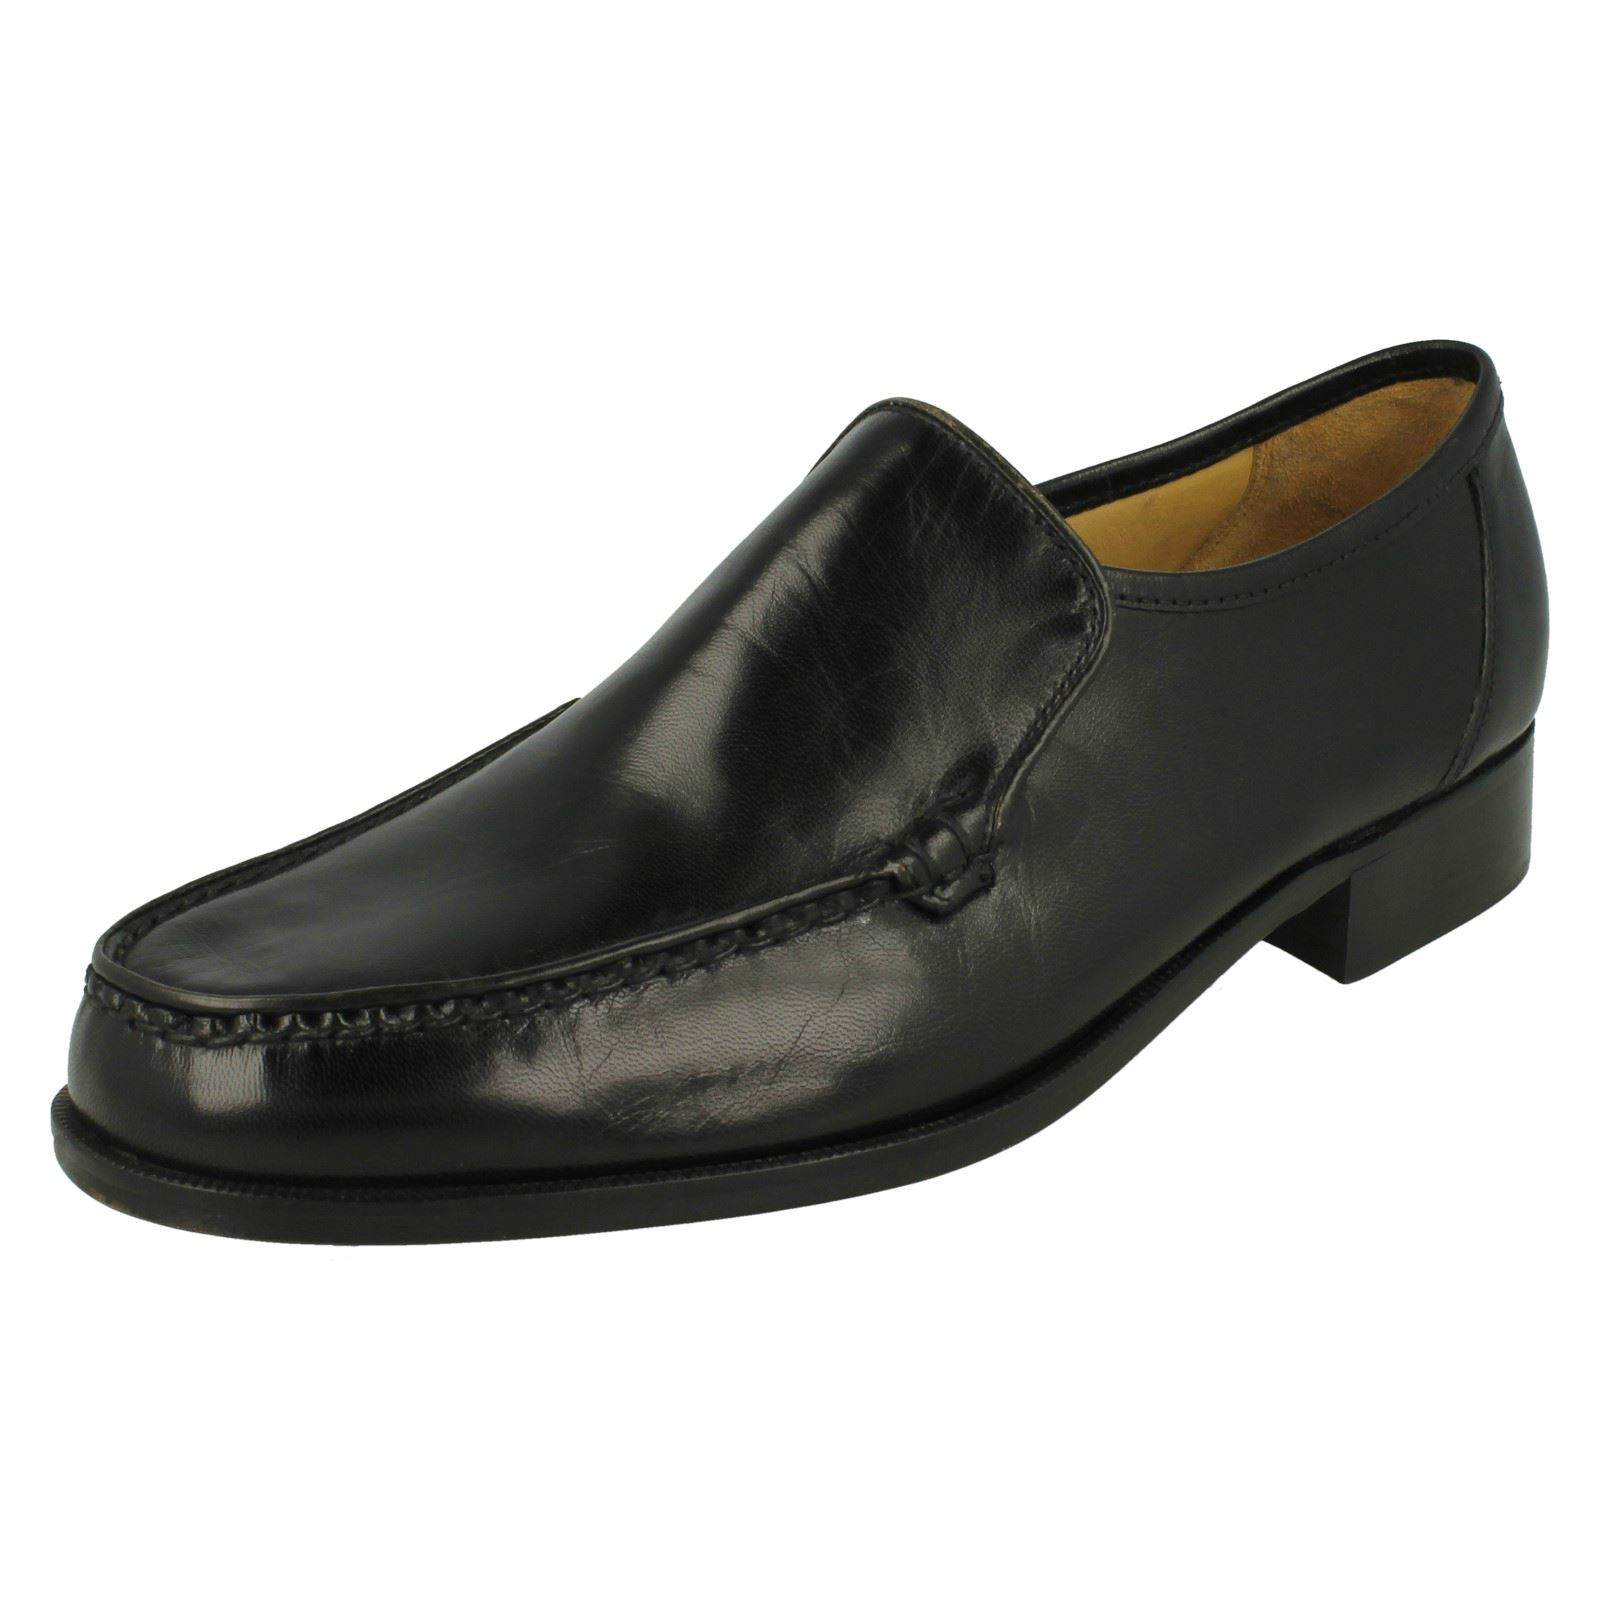 Mens Thomas bluent Illinois Slip On Smart shoes